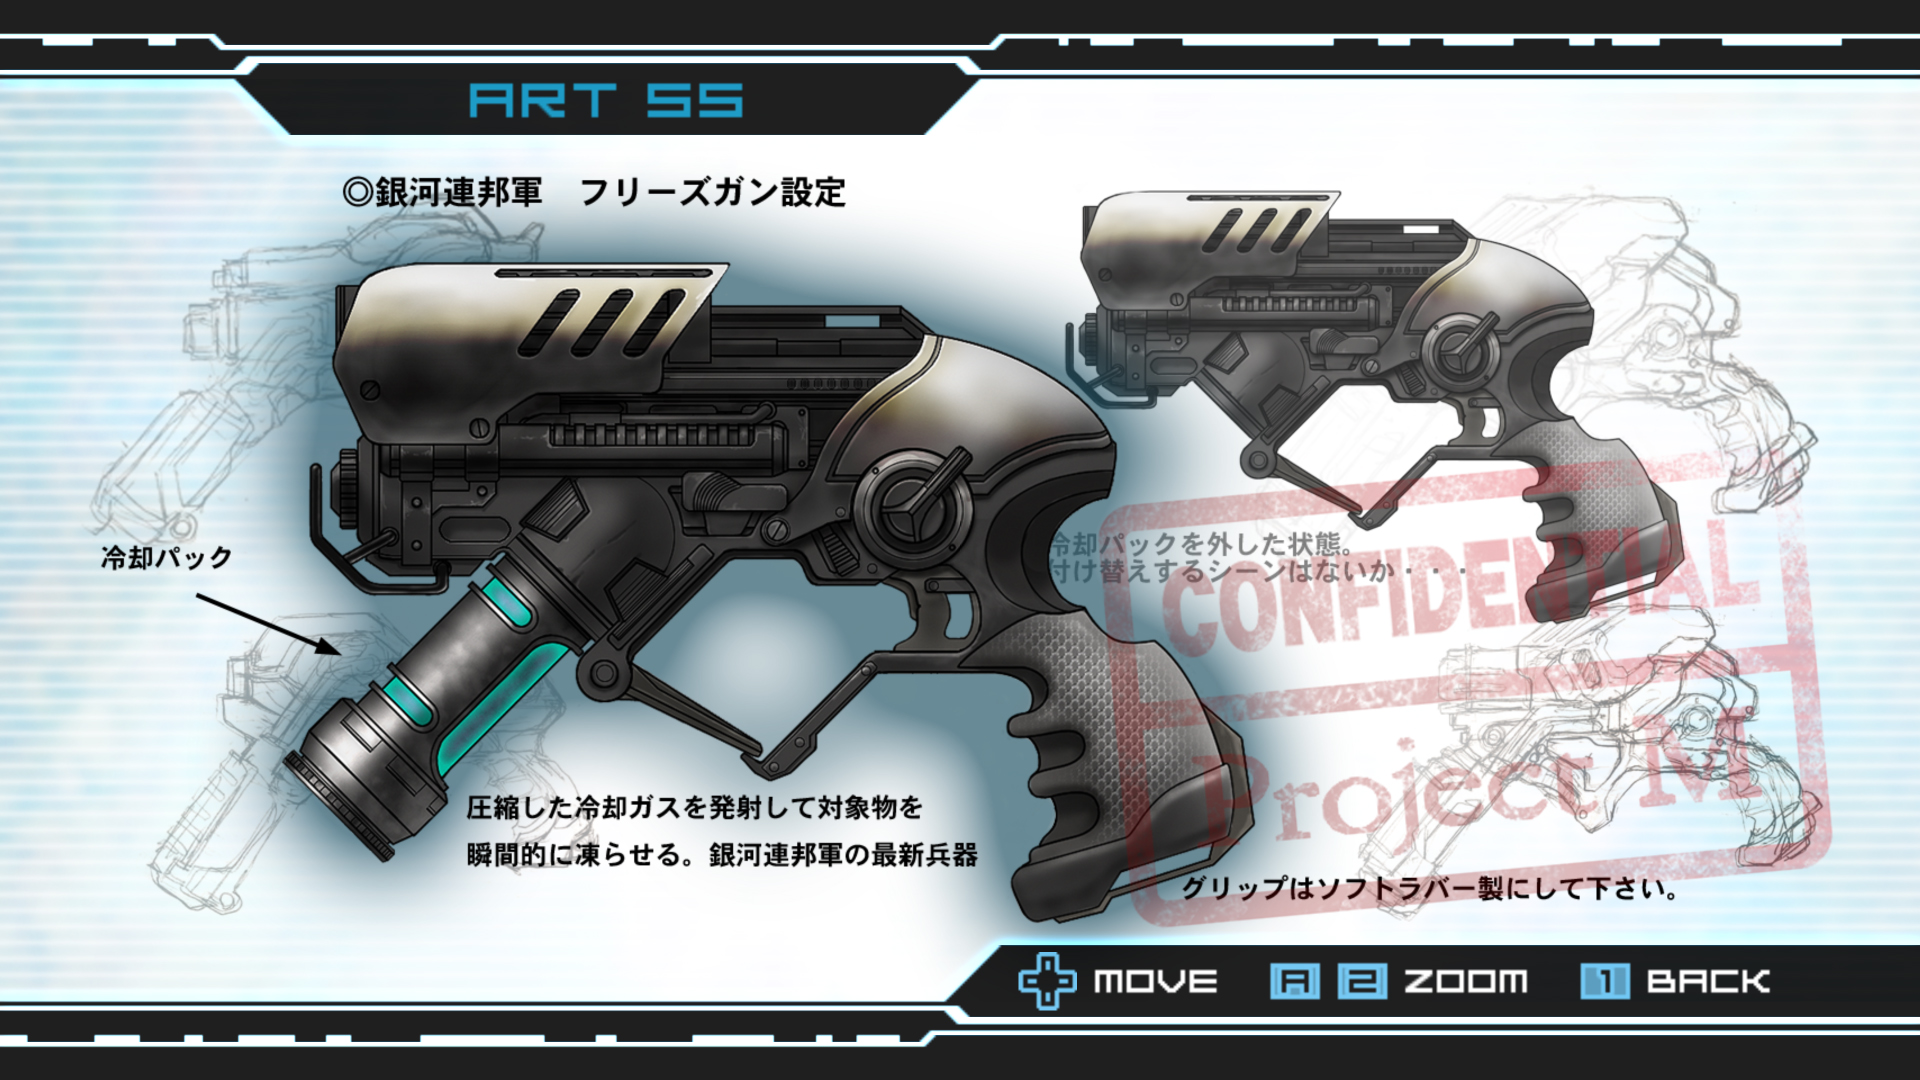 Metroid_Other_M_Freeze_Gun_Art_55.jpg